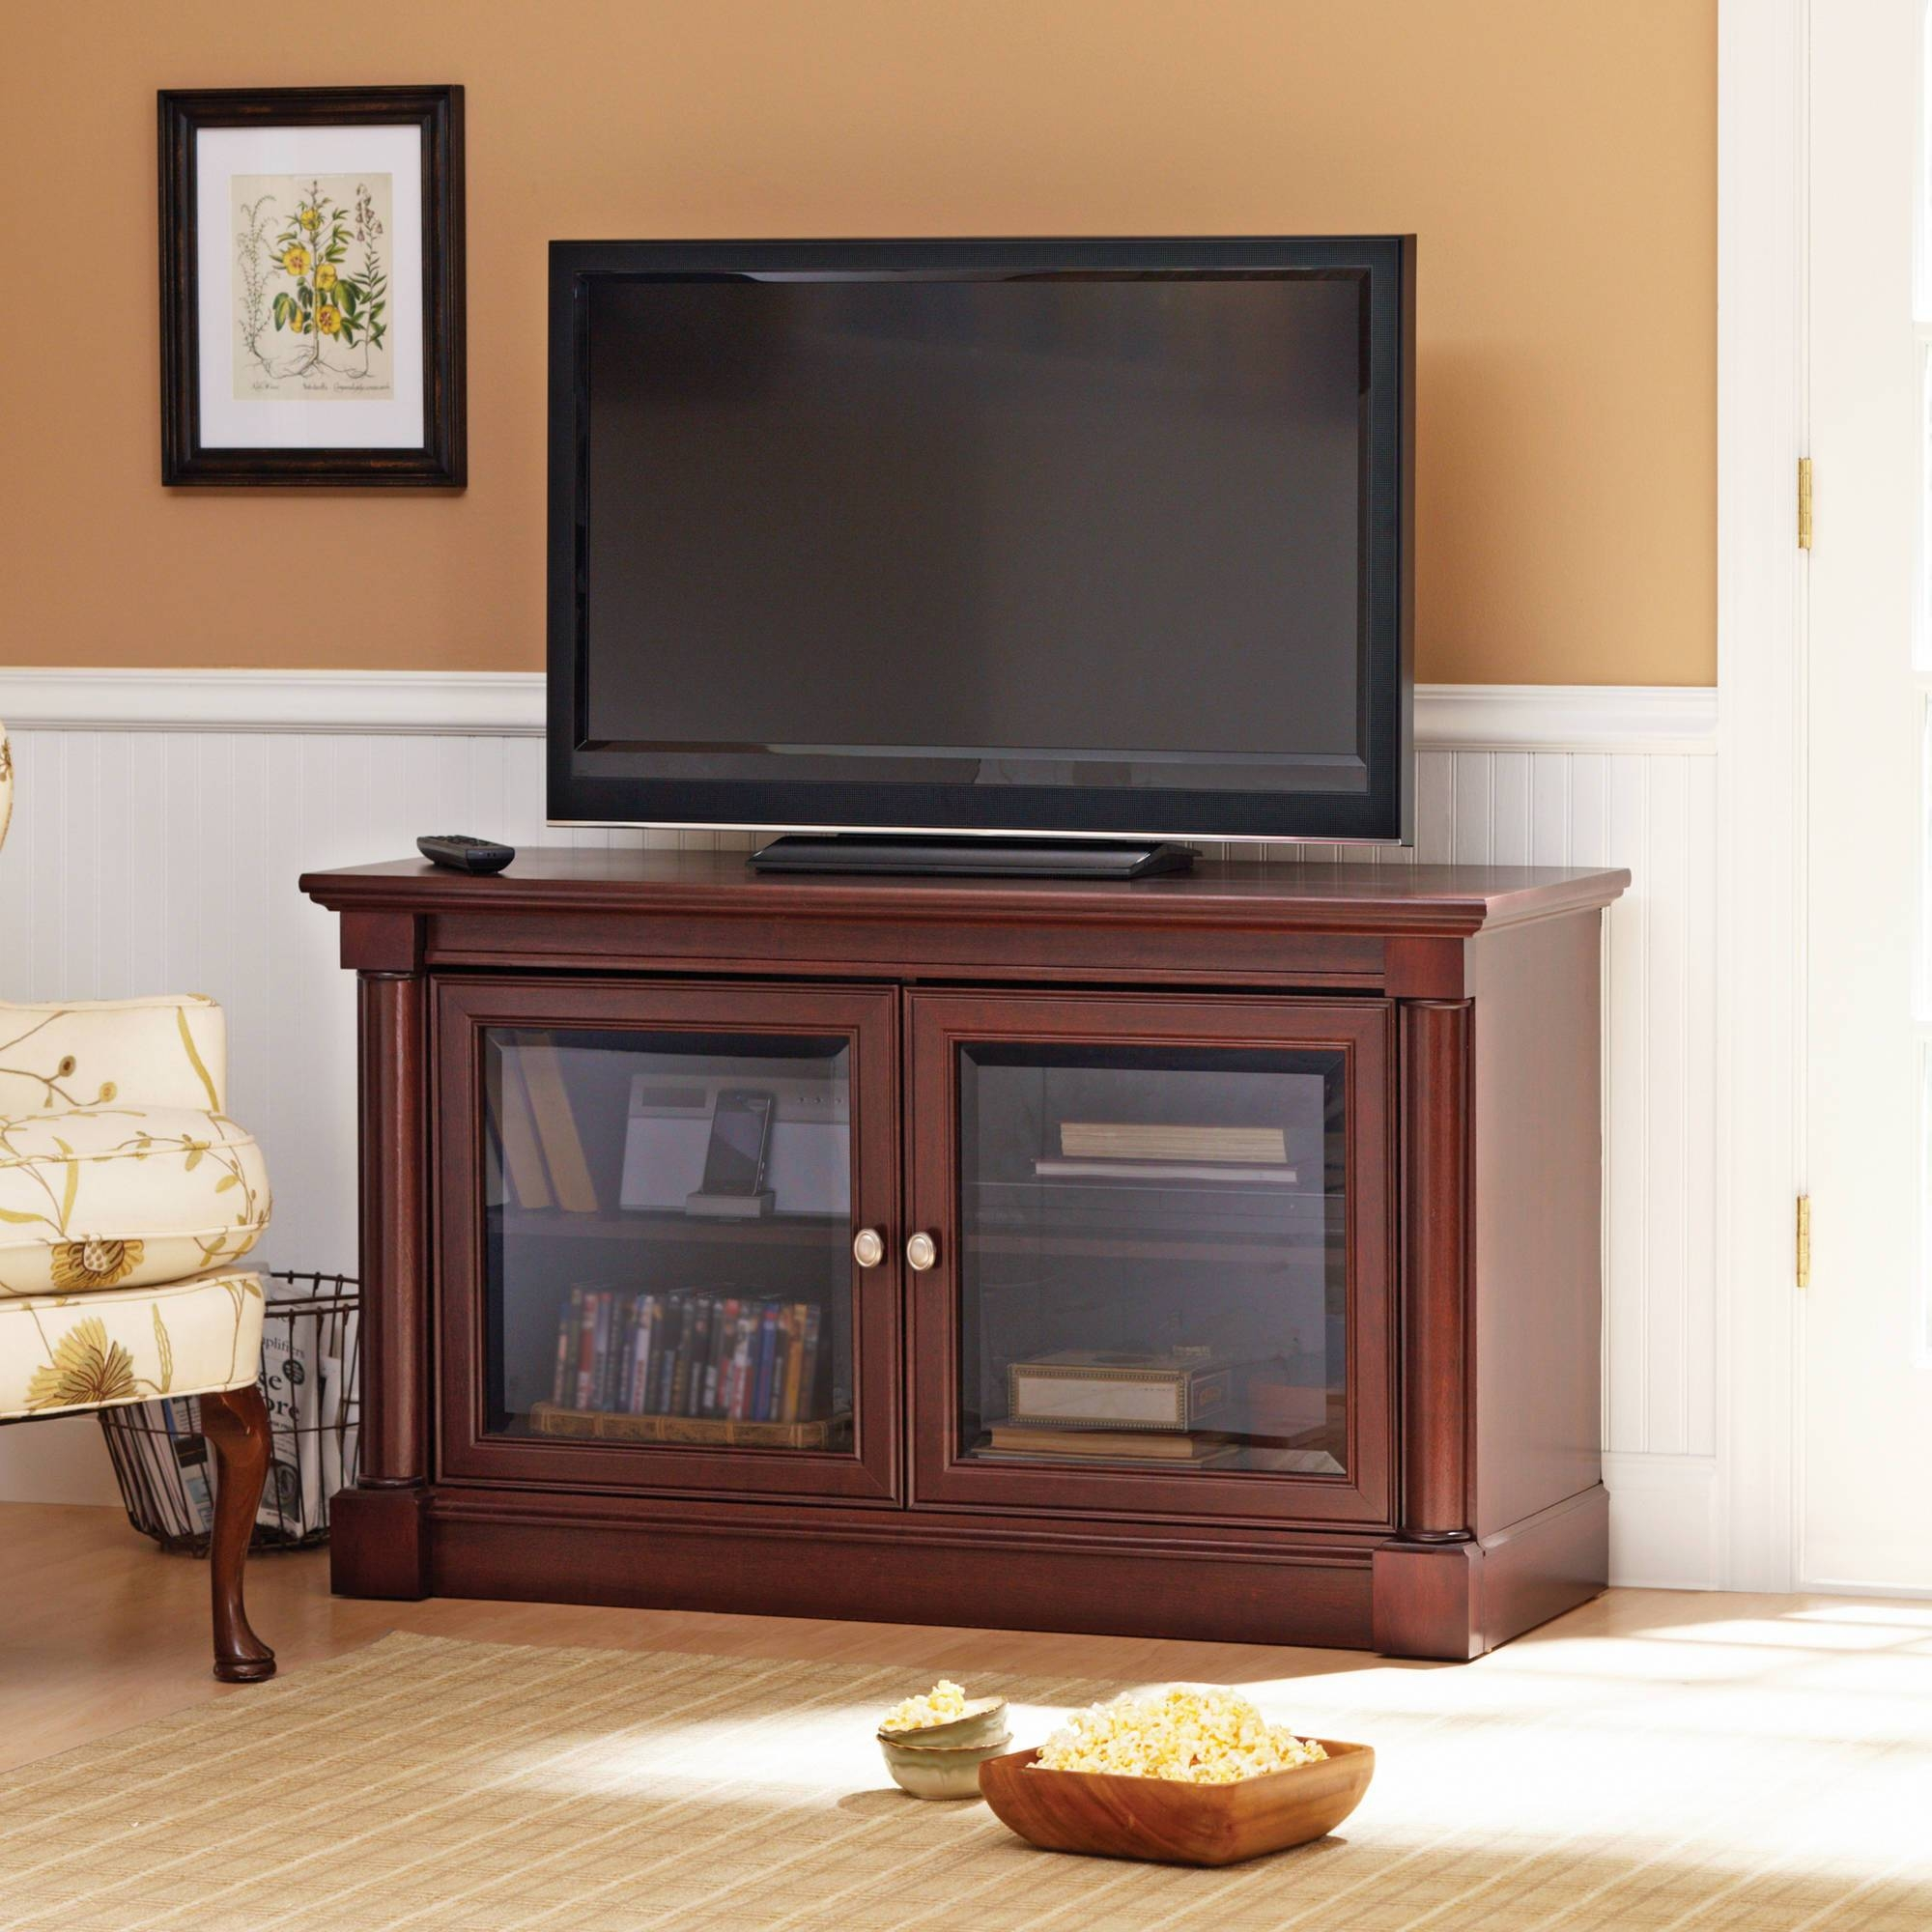 Better Homes And Gardens Ashwood Road Cherry Tv Stand, For Tvs Up Throughout Cherry Wood Tv Stands (View 10 of 15)